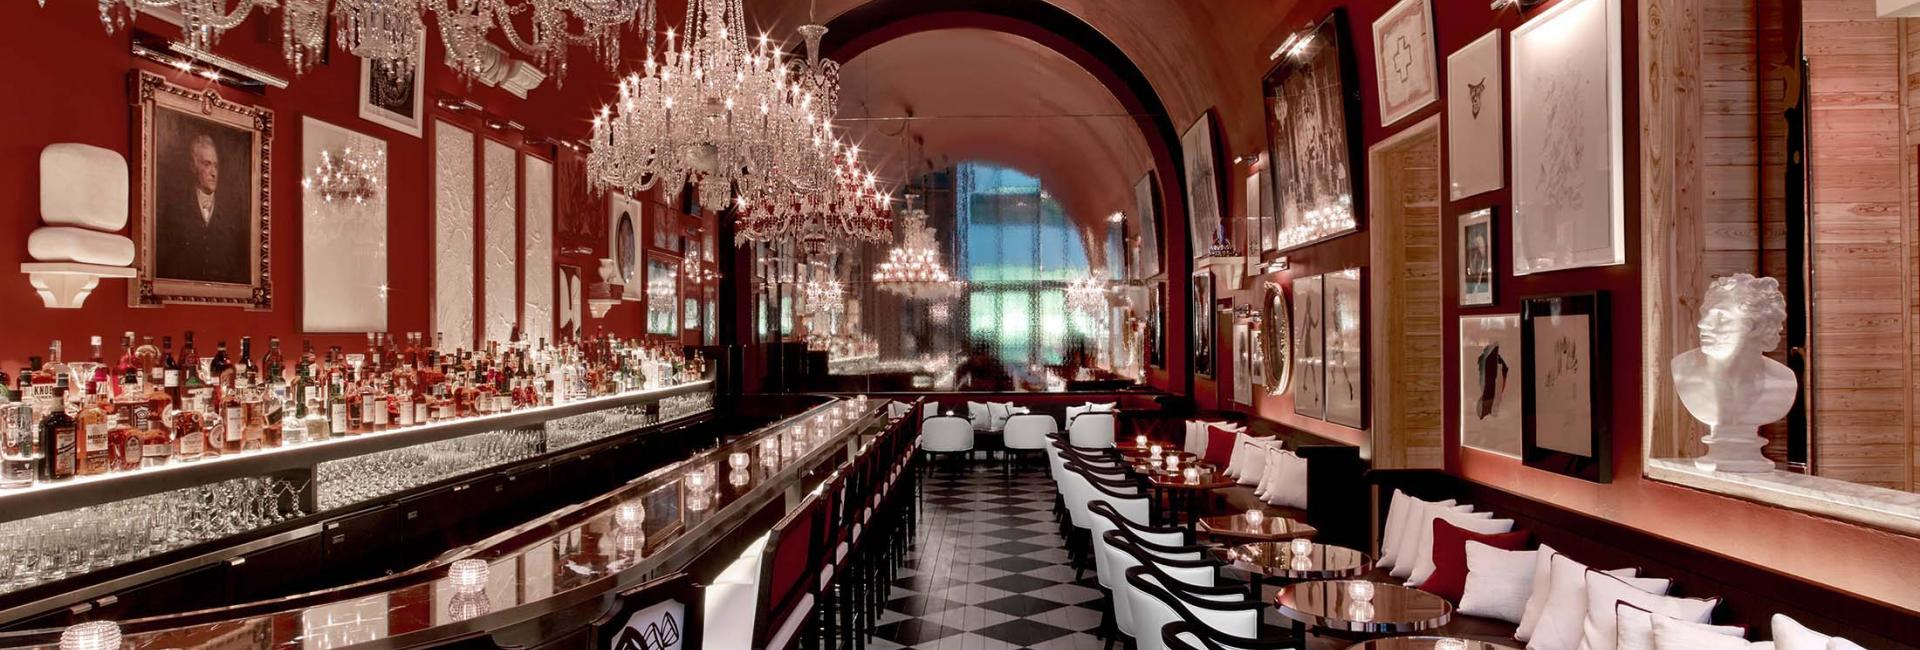 The interior of the Baccarat bar